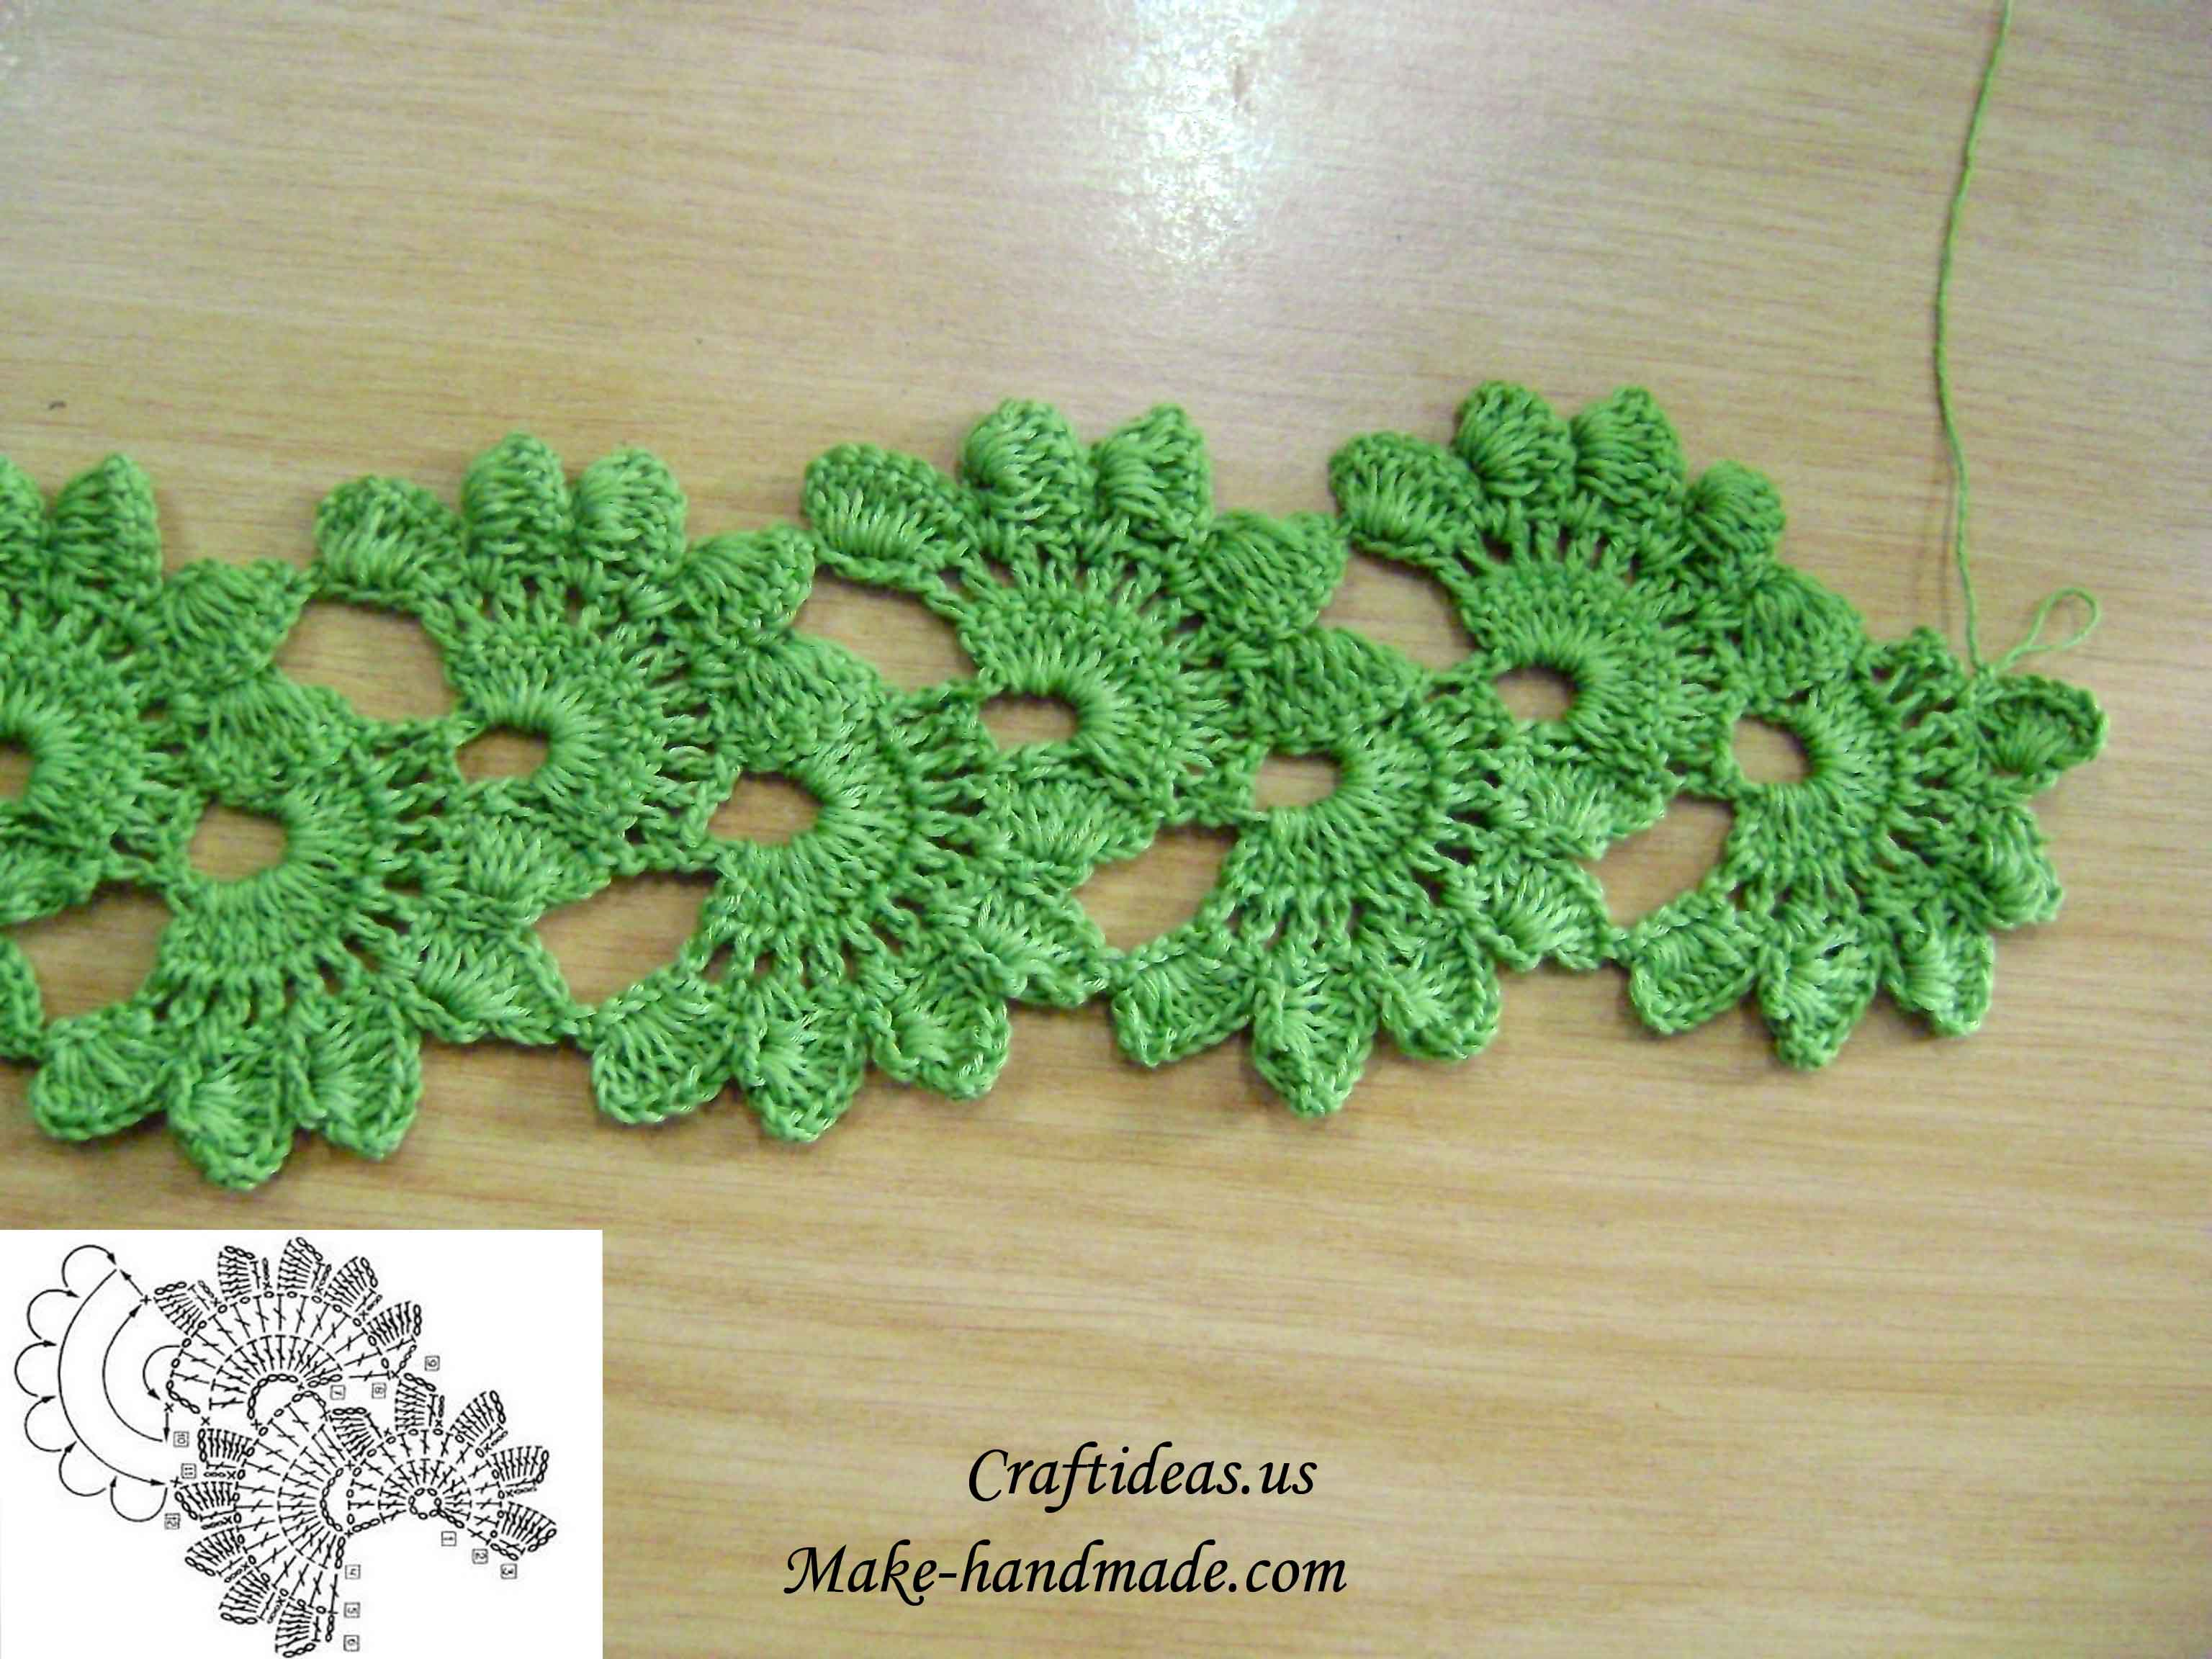 Crochet Ideas : Crochet flower for a strip and scarf - Craft Ideas